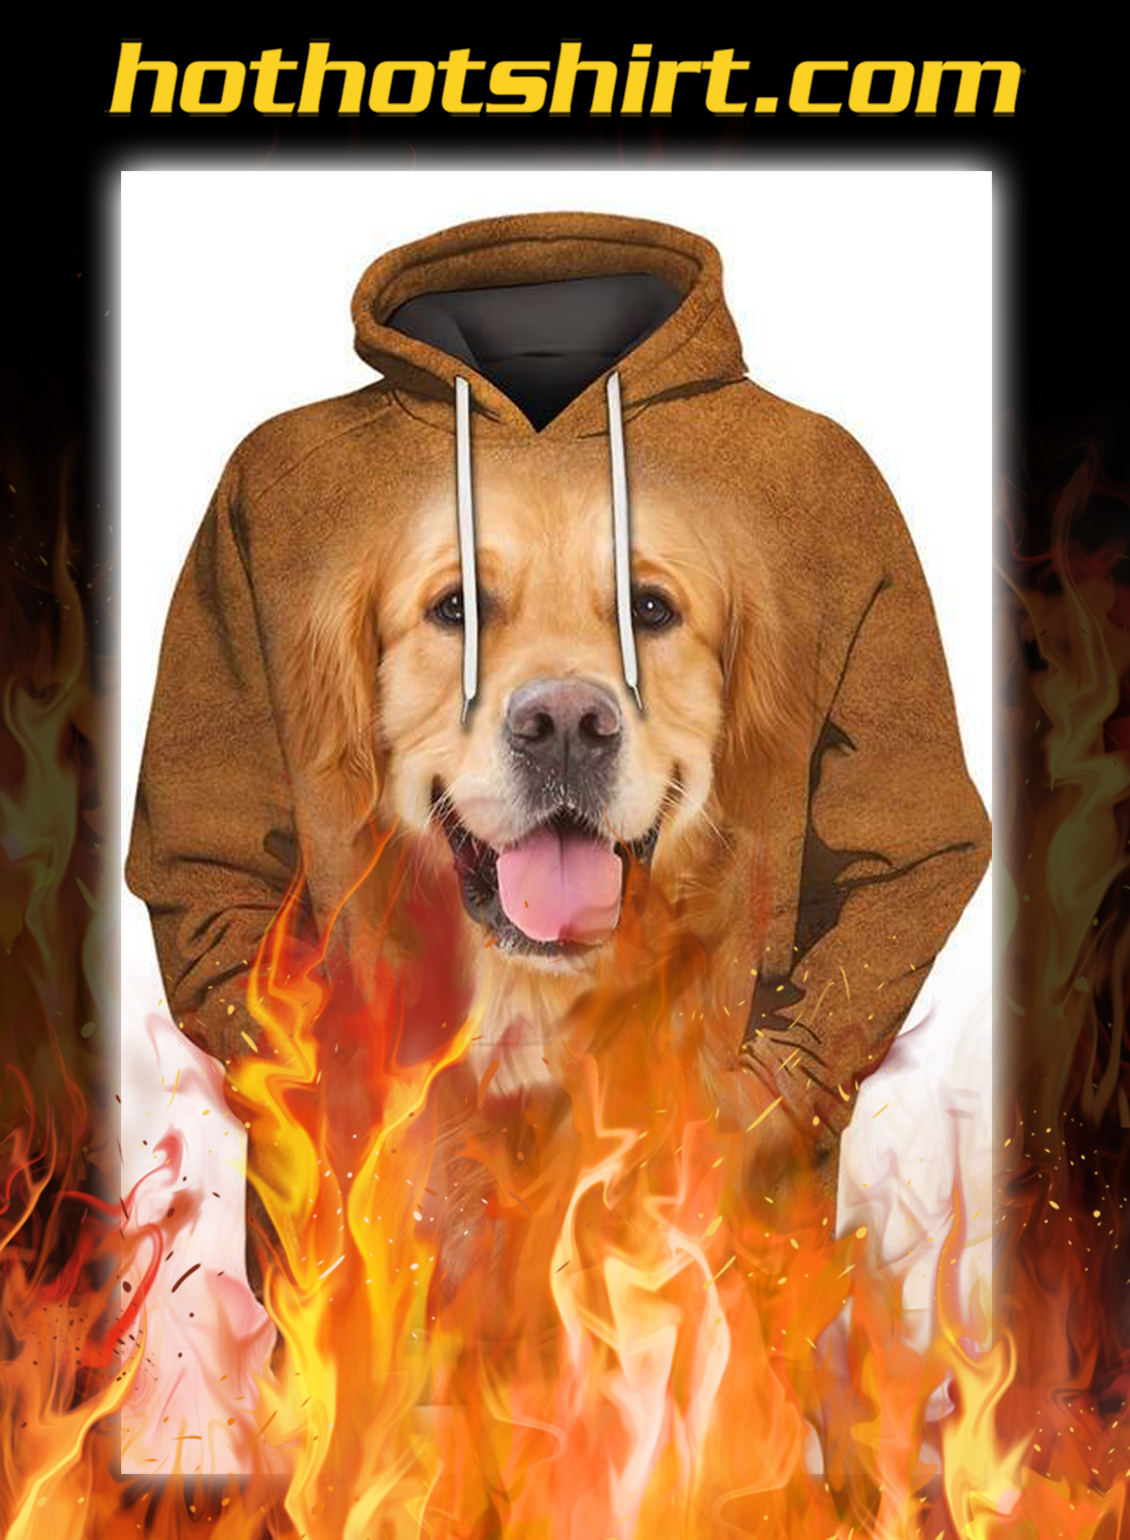 Animals Dogs Golden Retriever Hairy Unisex 3D Graphic Hoodies - pic 1